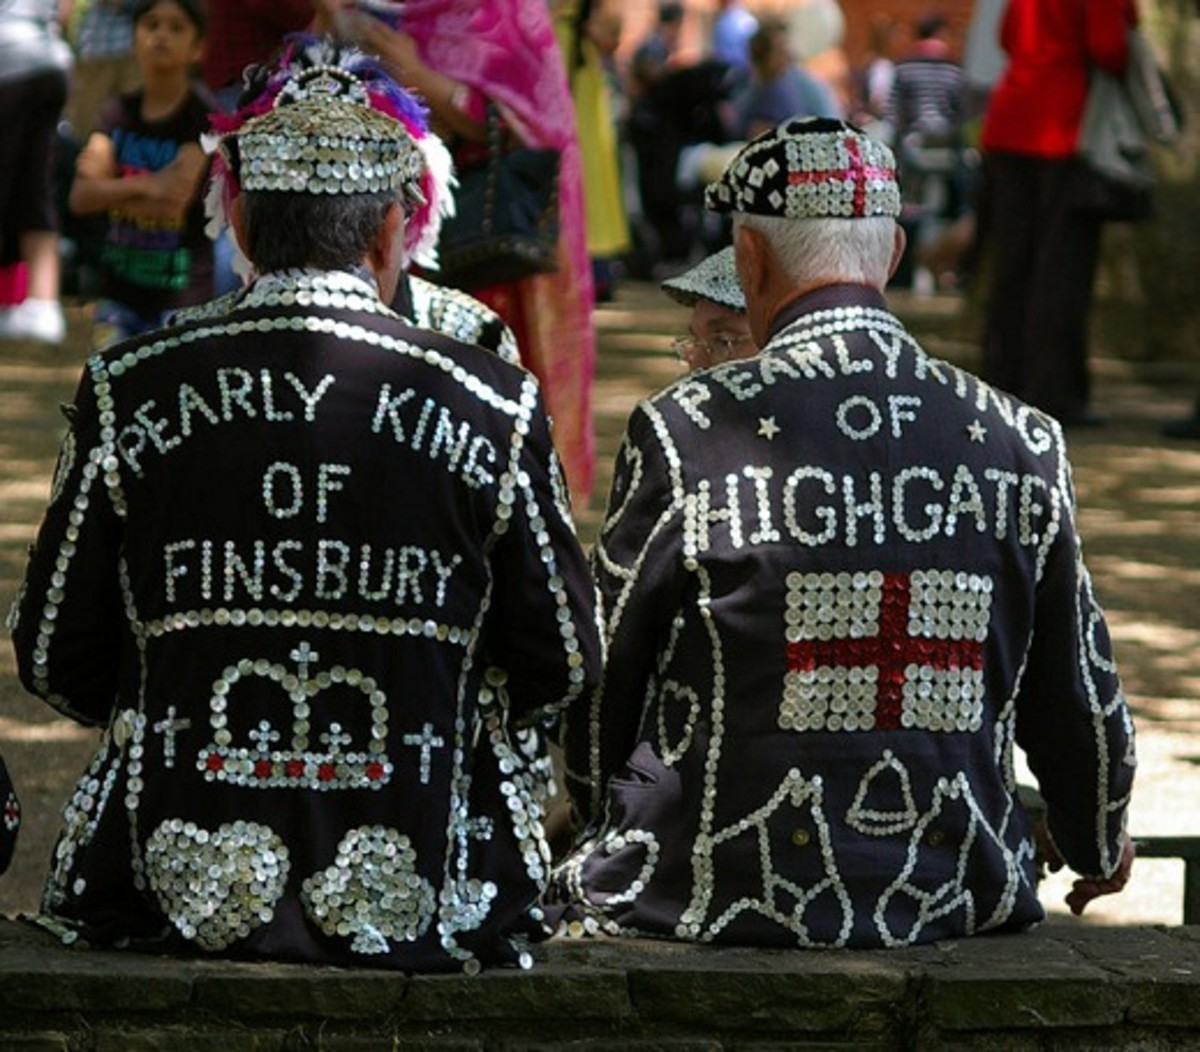 Two pearly kings taking a break.